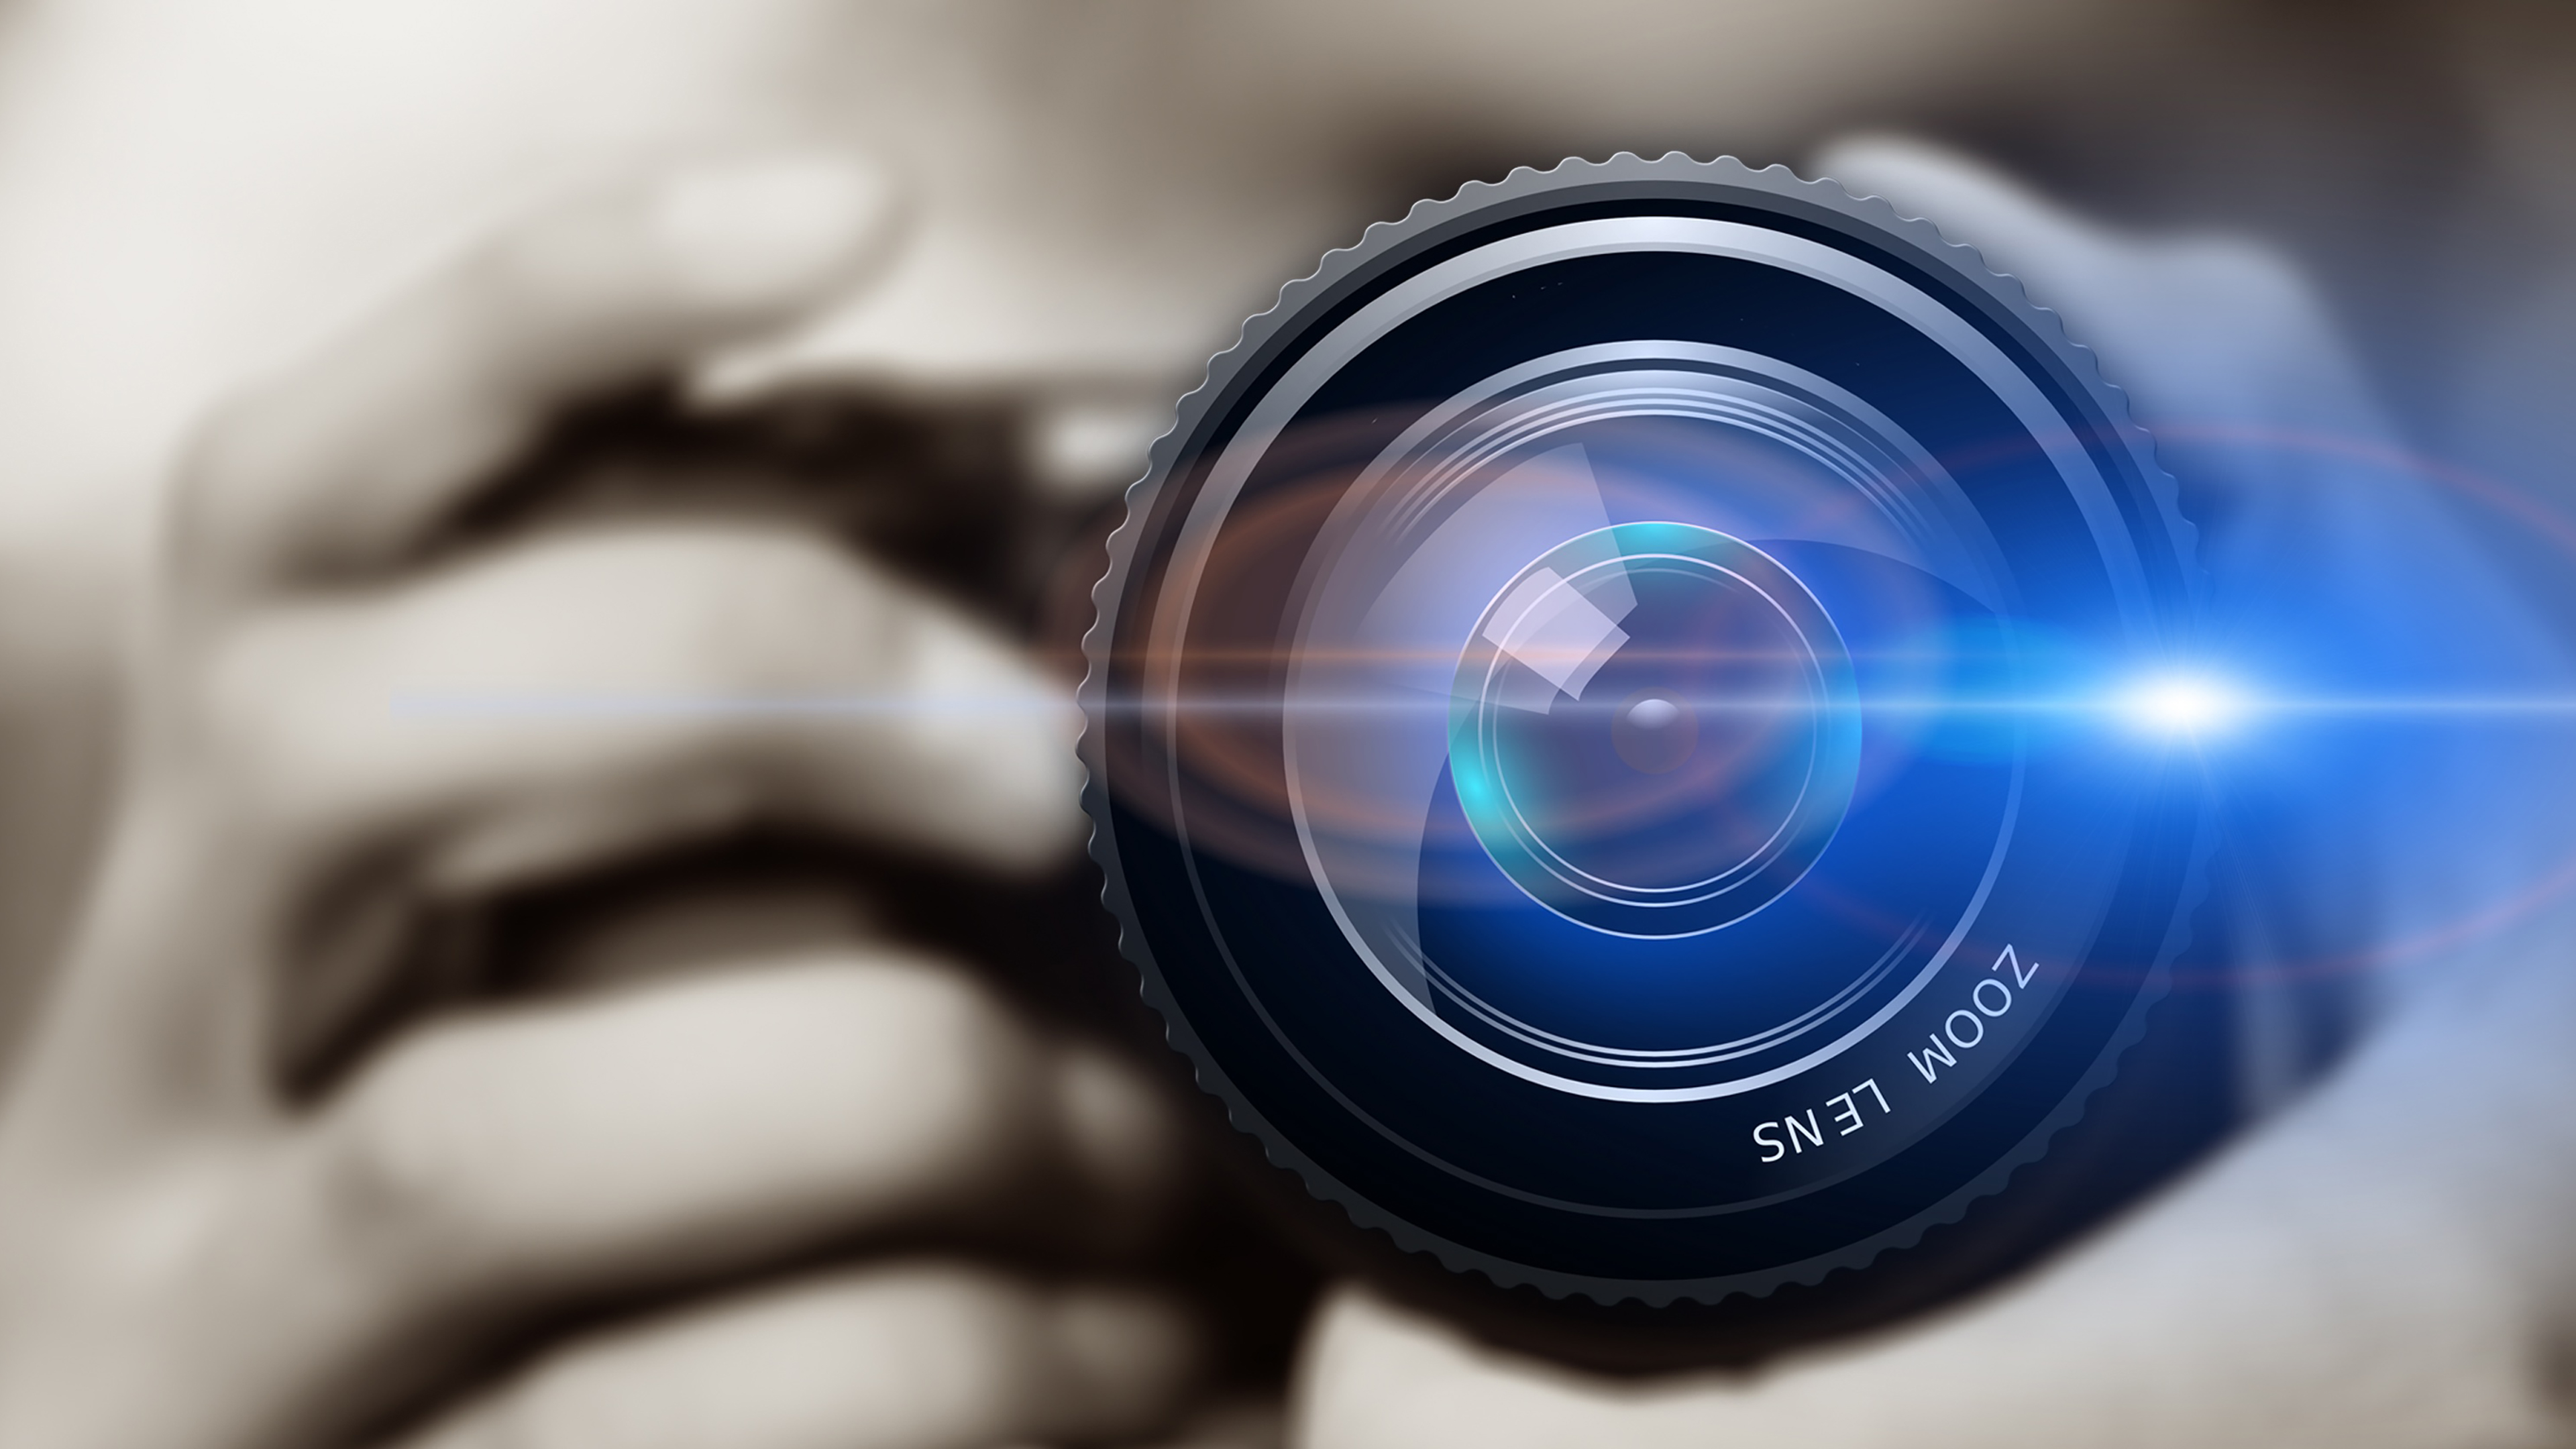 Photograper Zoom Lens 4k Wallpapers Wallpapers Hd